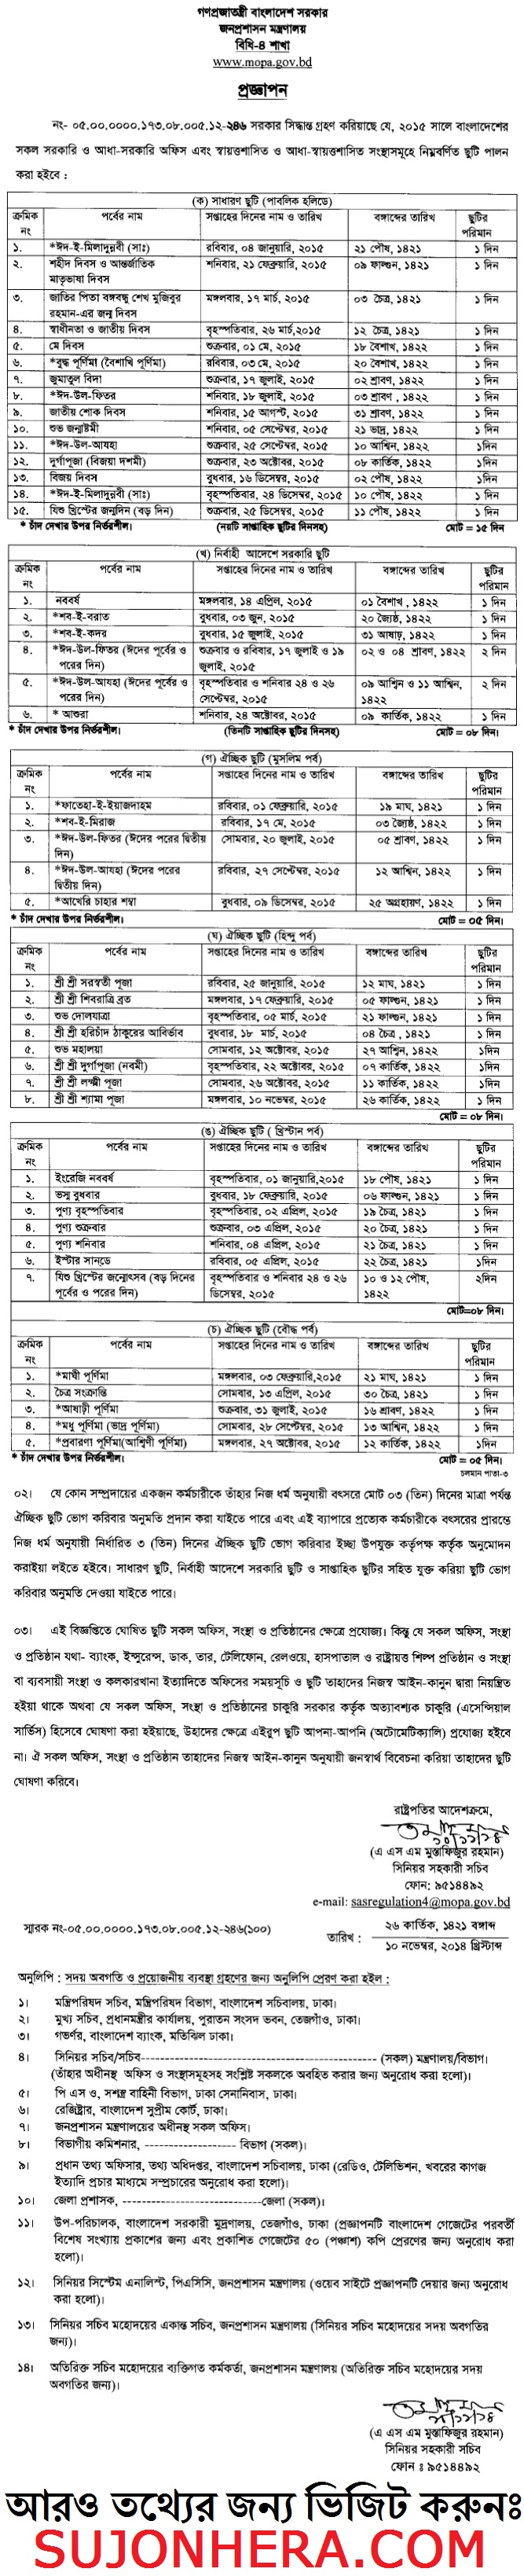 Calendar 2015 Bangladesh Government Public Holiday